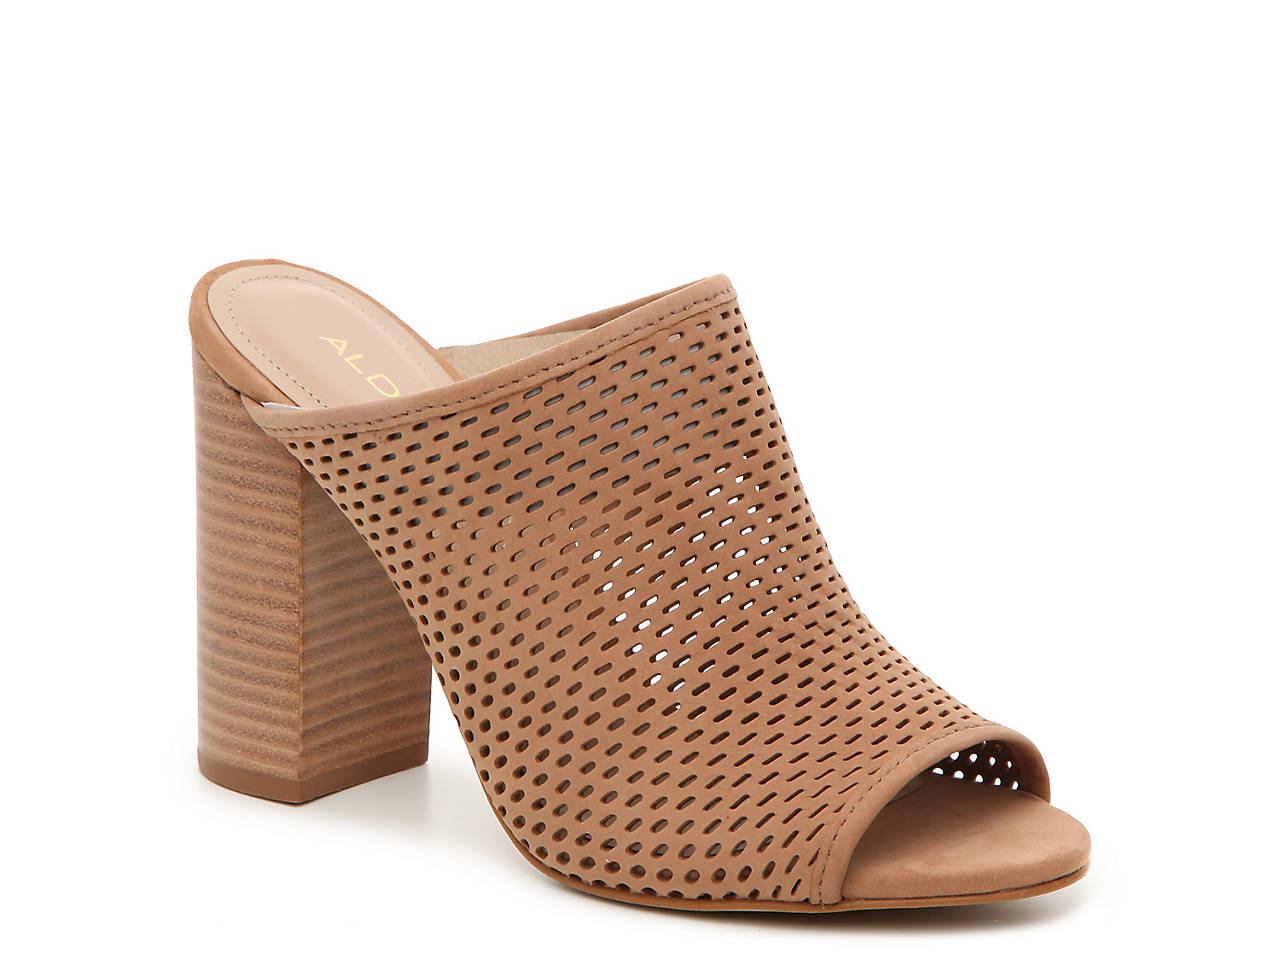 6f11a229f0f Aldo Thiasa Sandal Women s Shoes